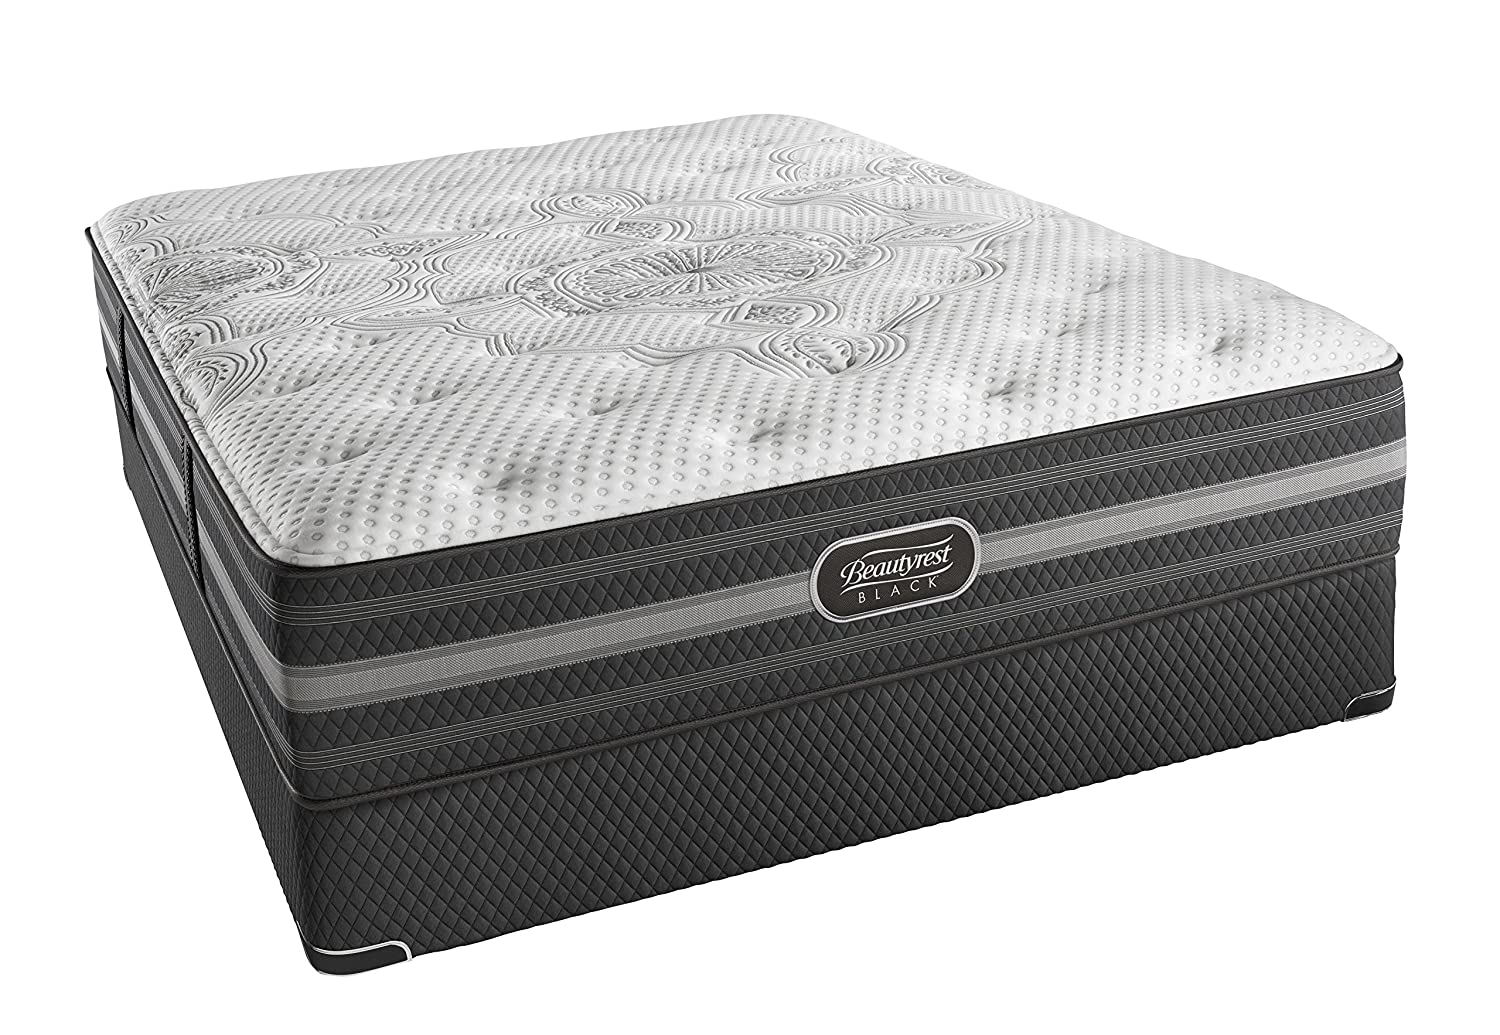 Beautyrest Mattress Reviews Consumer Reports >> Beautyrest Black Desiree Luxury Firm Mattress King